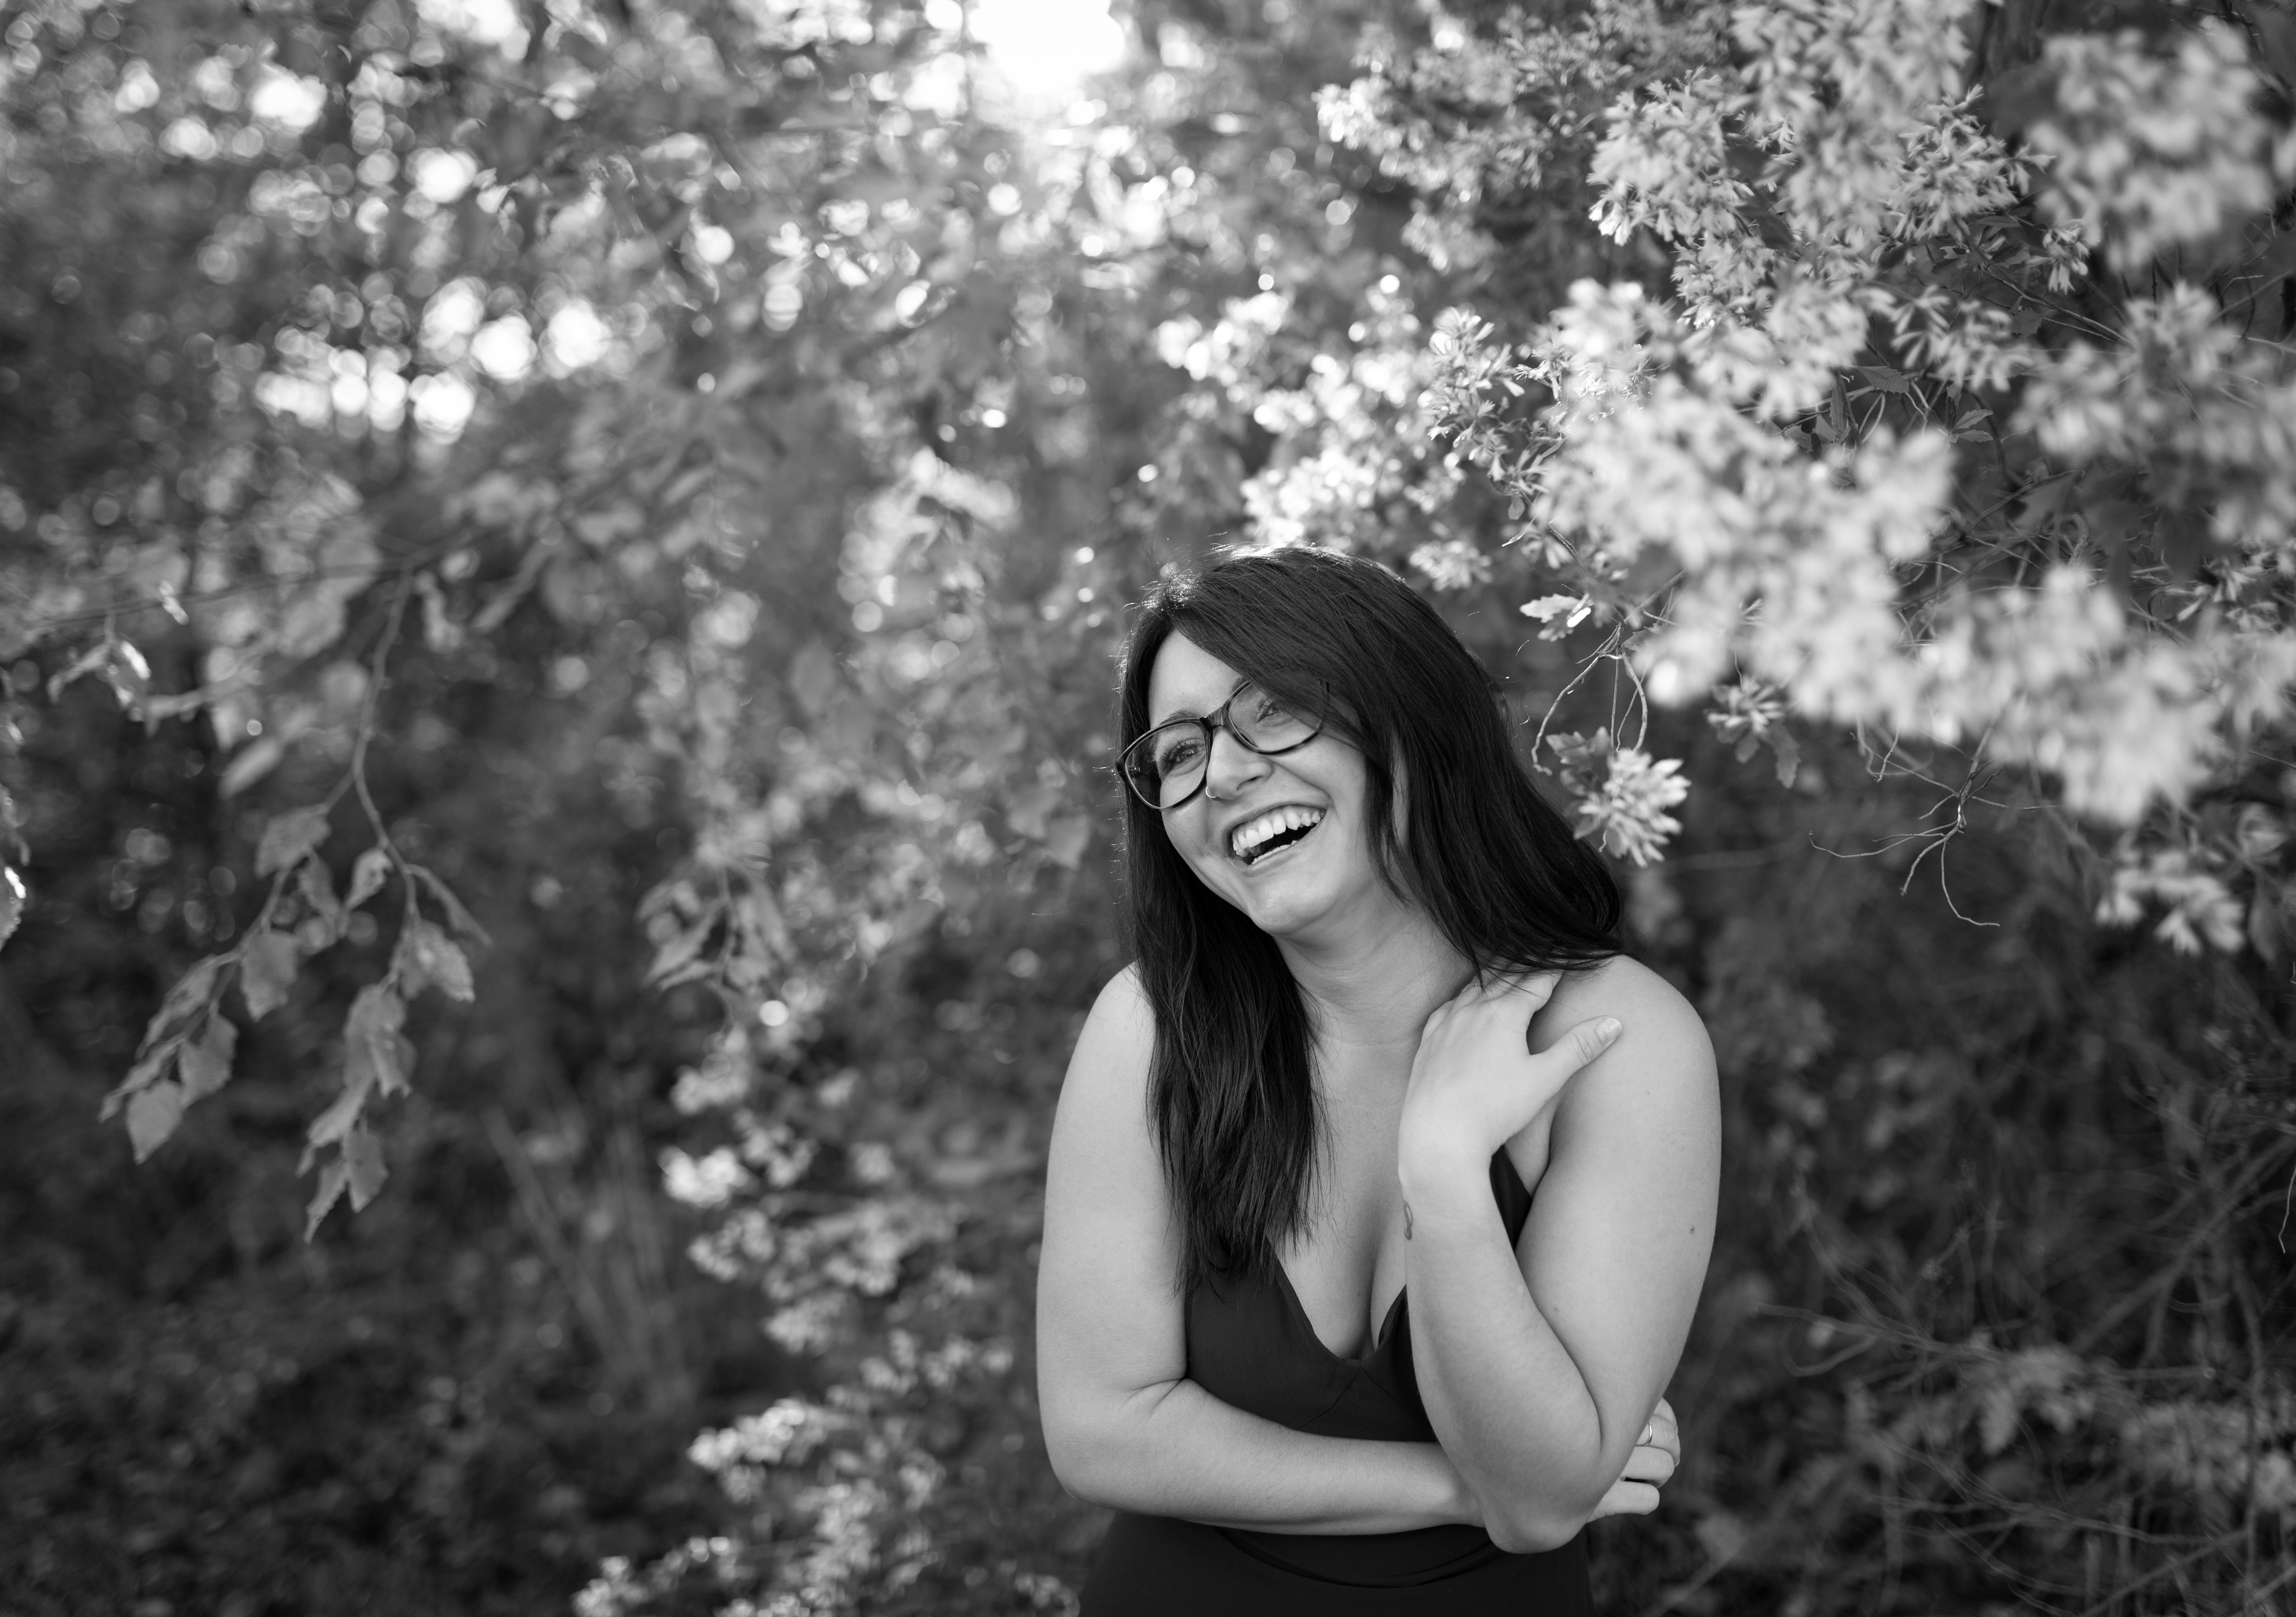 Mia laughs at something out of frame. Elizabeth A. Images CLT portrait photographer